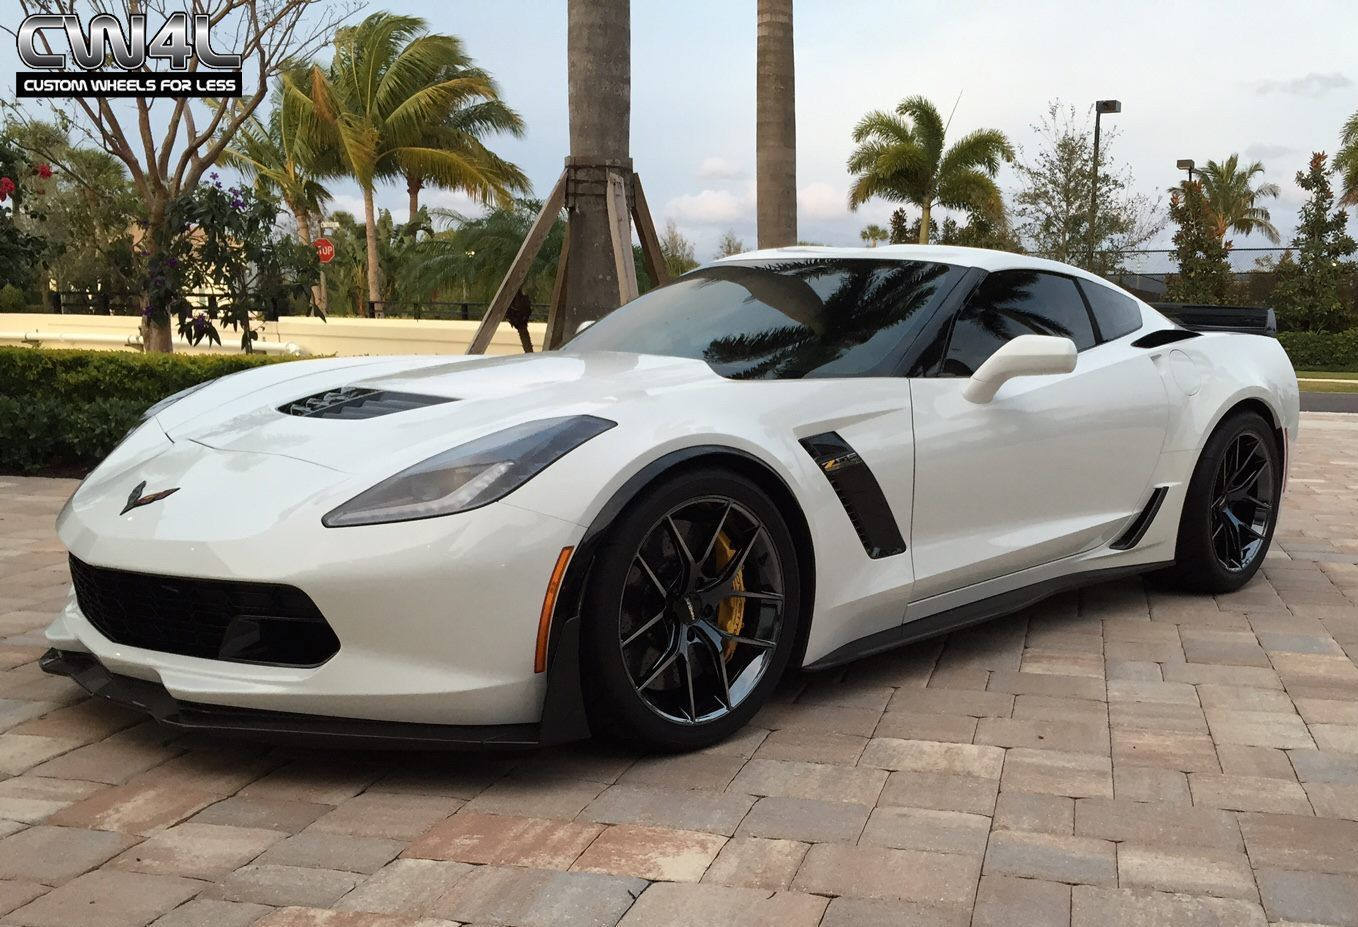 2015 Chevrolet Corvette | White C7 Corvette Z06 on Forgeline One Piece Forged Monoblock VX1 Wheels in Black Chrome PVD